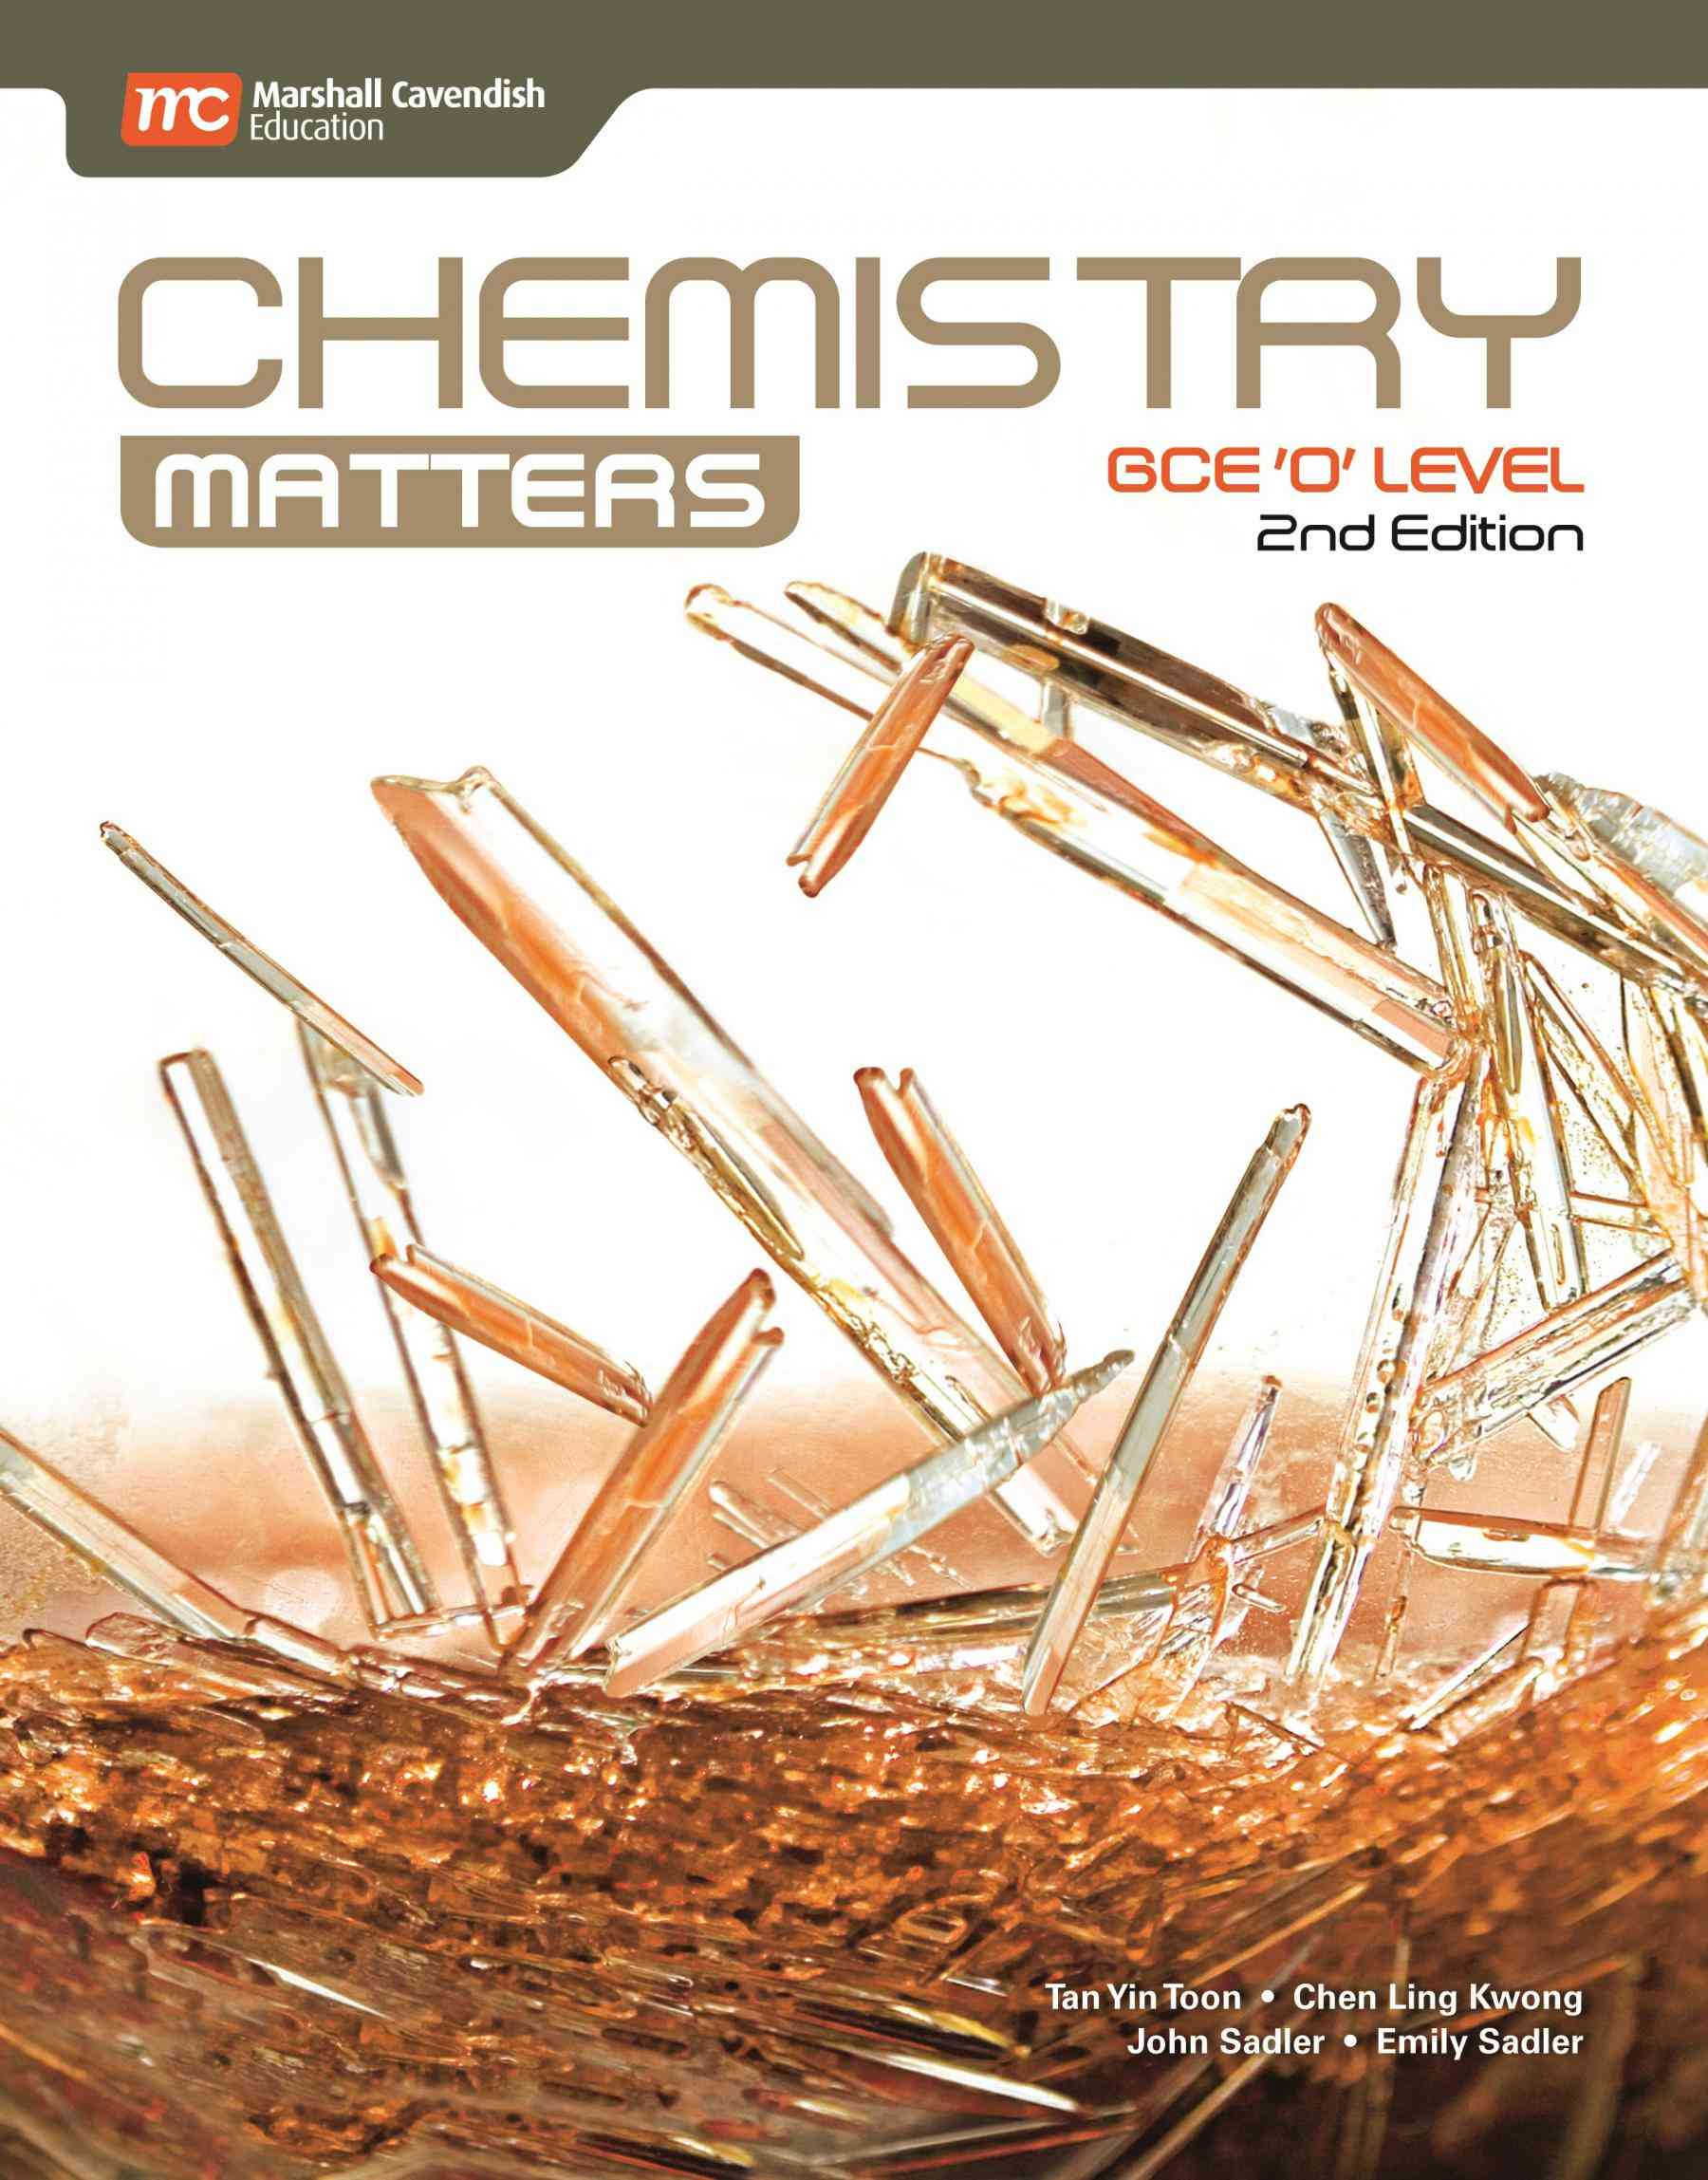 GCE O Level Chemistry Matters  2nd Edition  Class 10